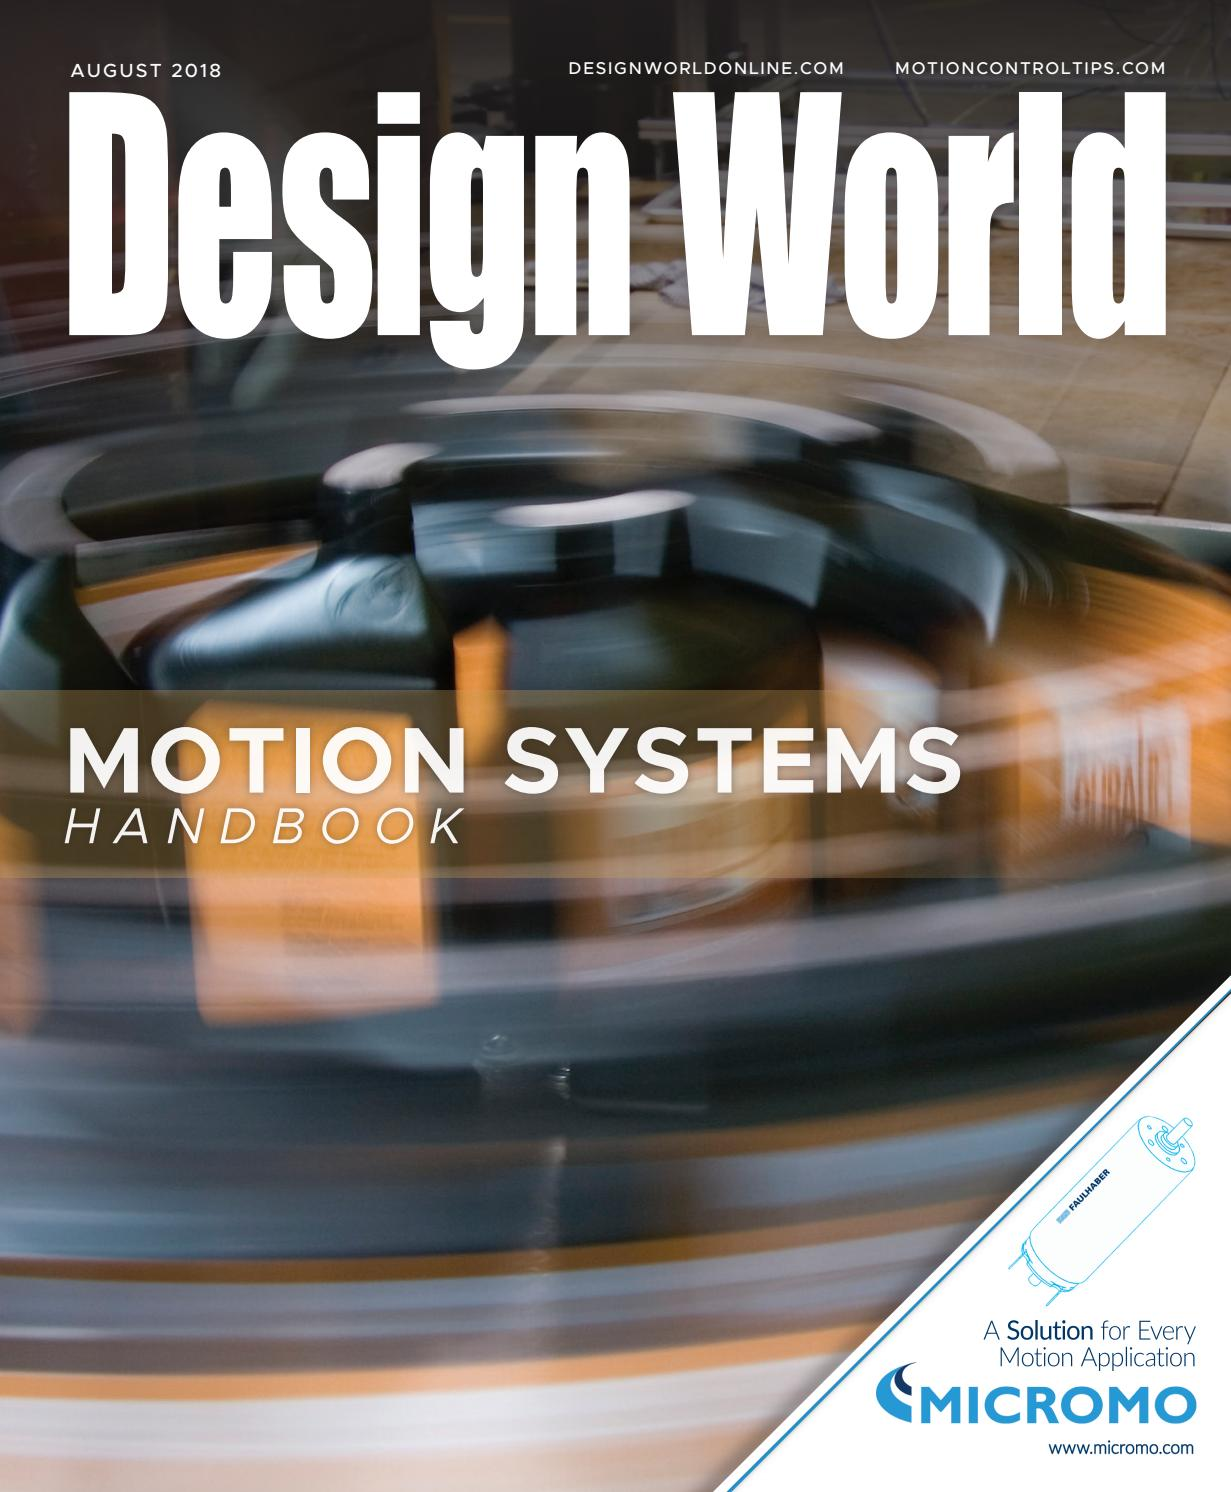 Motion Systems Handbook 2018 By Wtwh Media Llc Issuu Often Incorrectly Called Rj Connectors Diagram Pin Outs For Straight